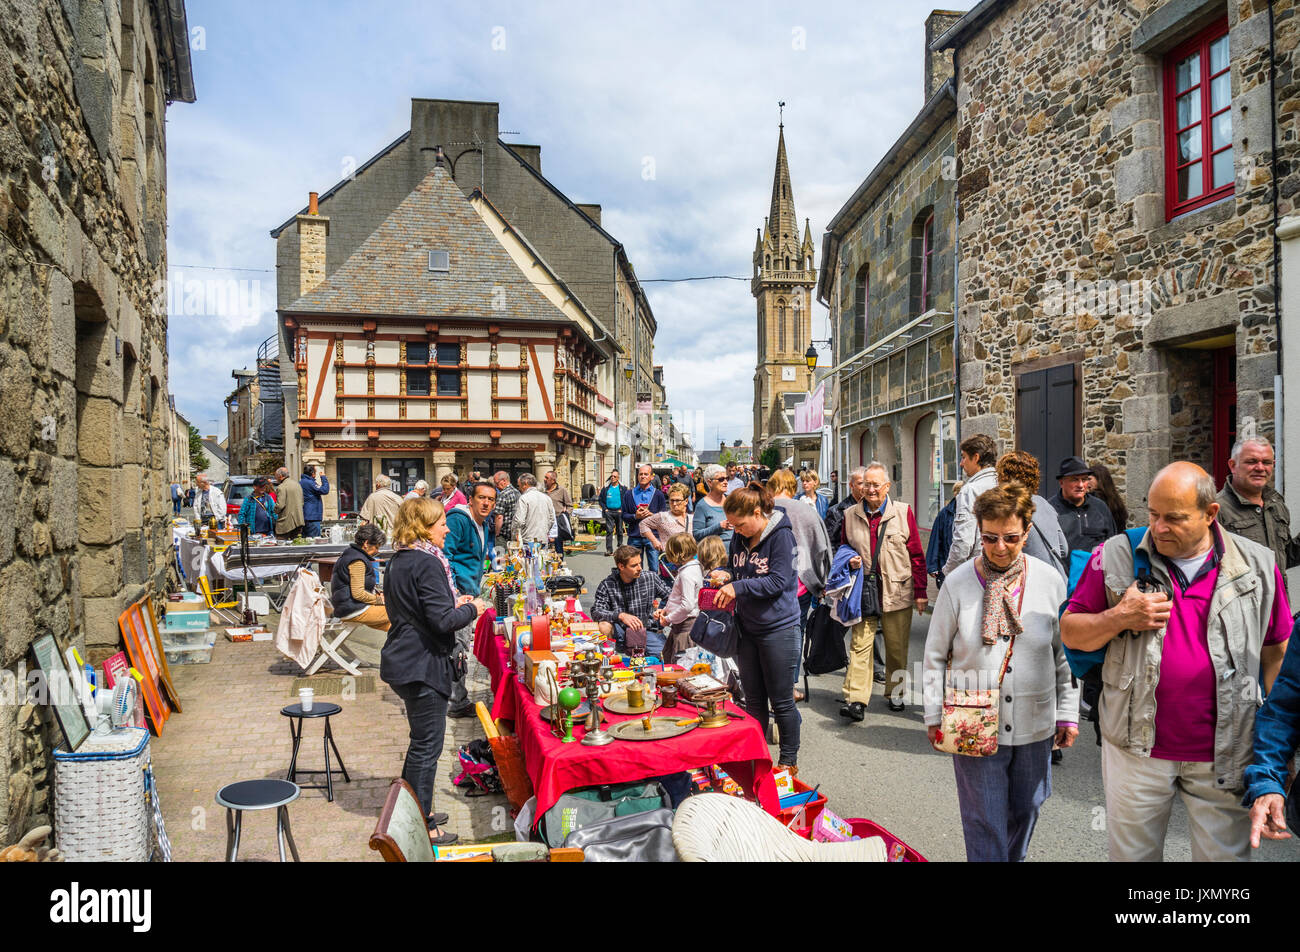 France, Brittany, Antiques Street Fair and flea market in the breton country town of Lanvollon - Stock Image